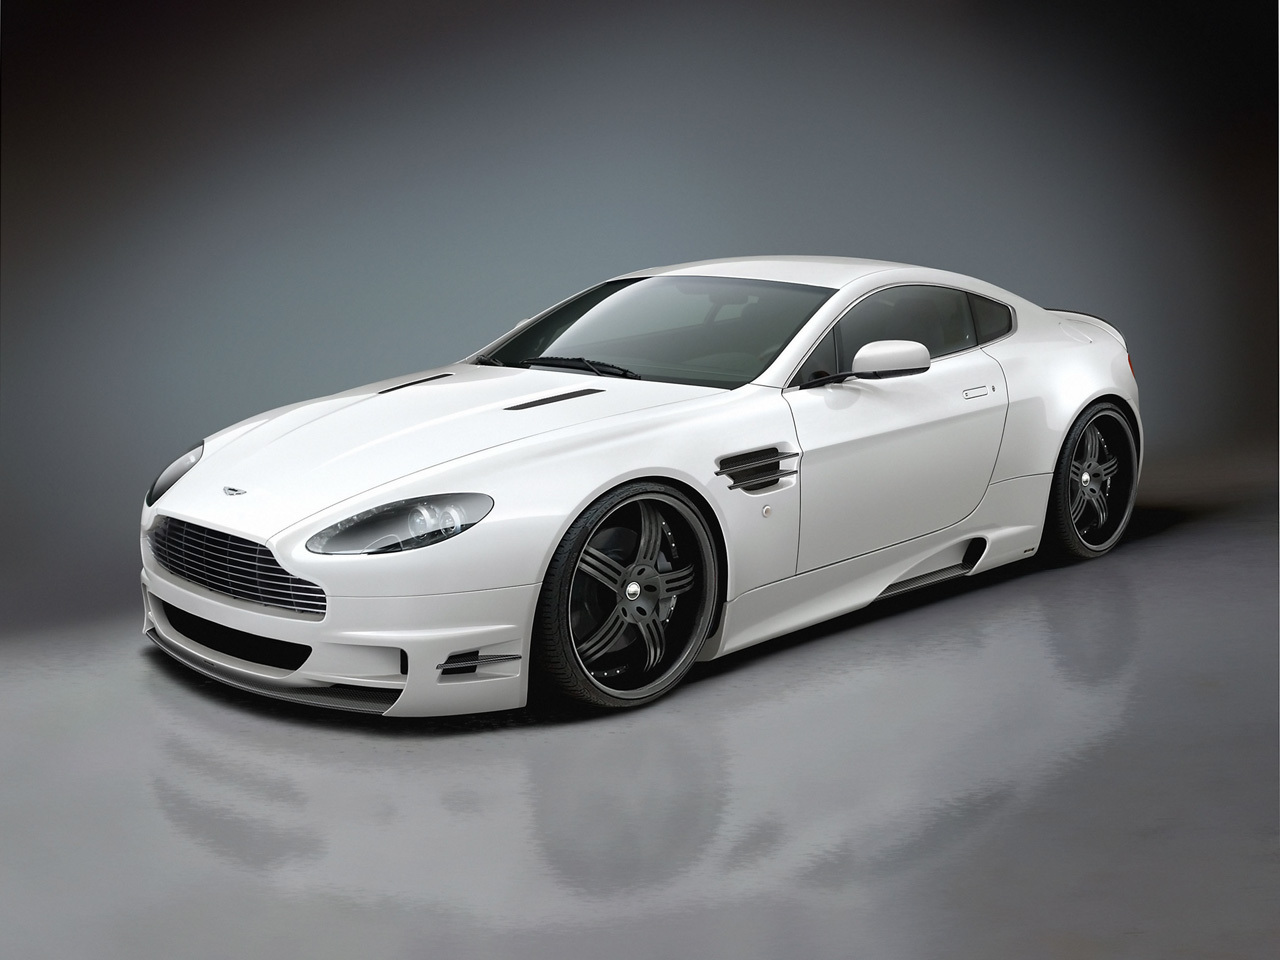 Aston Martin Wallpaper (4300418)